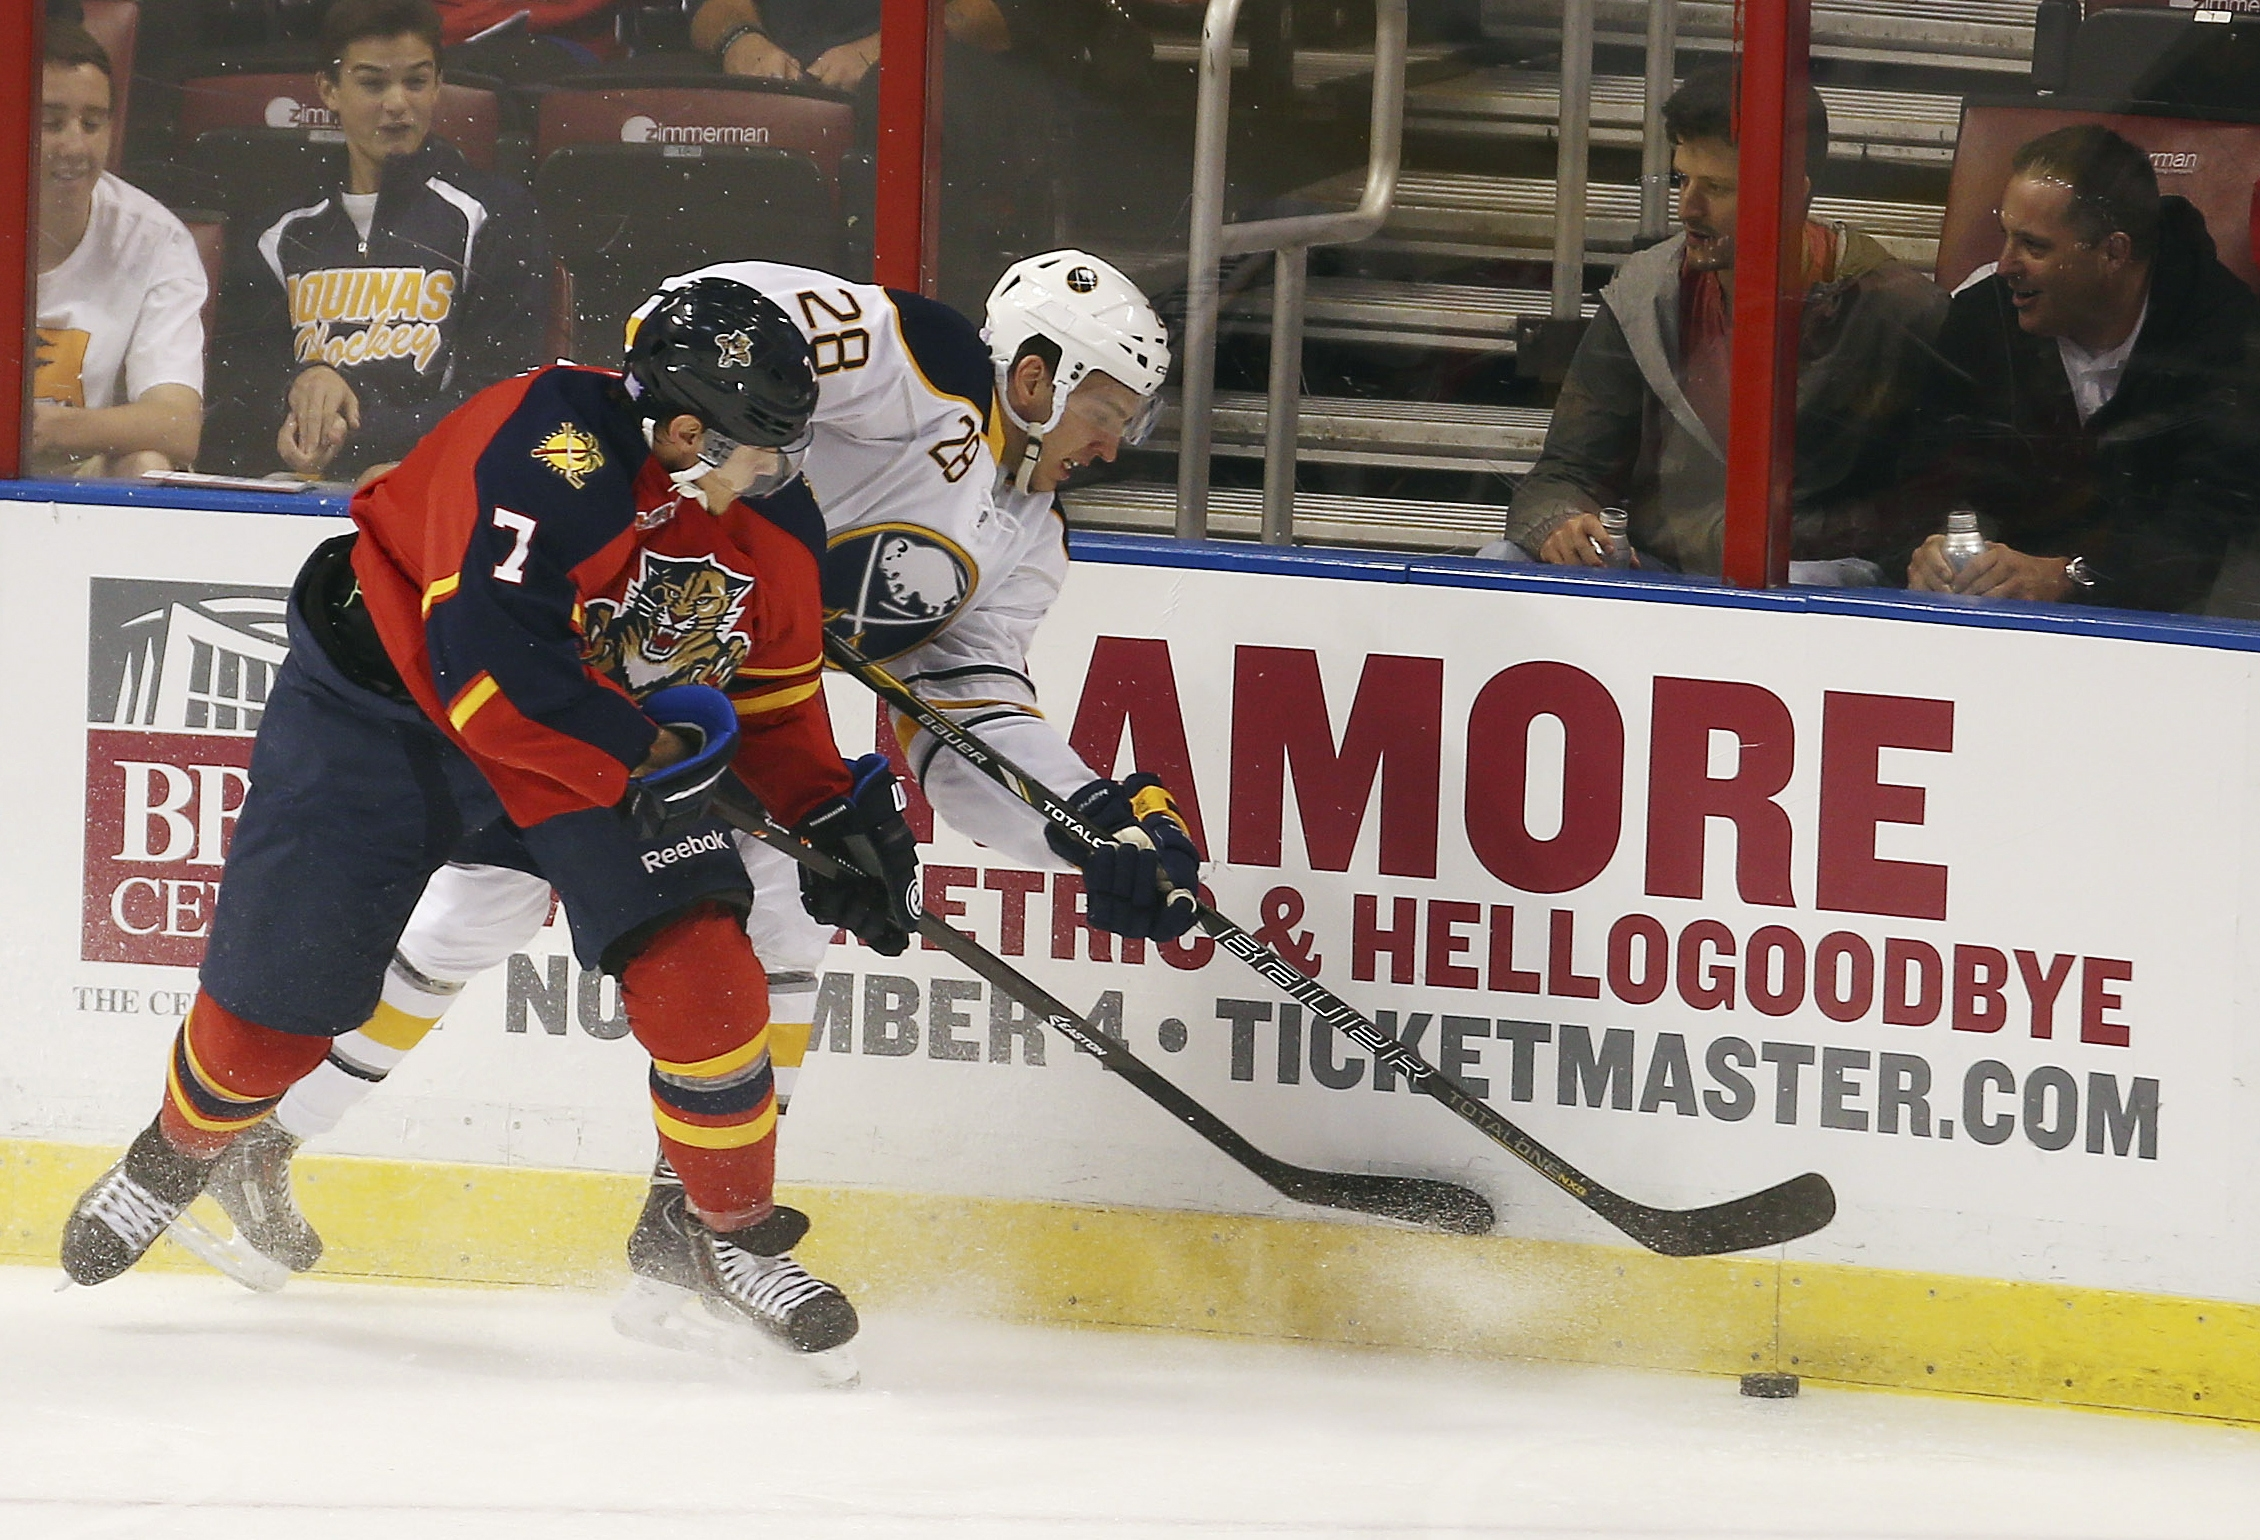 Florida's Dmitry Kulikov and Buffalo's Zemgus Girgensons battle for the puck during the first period.